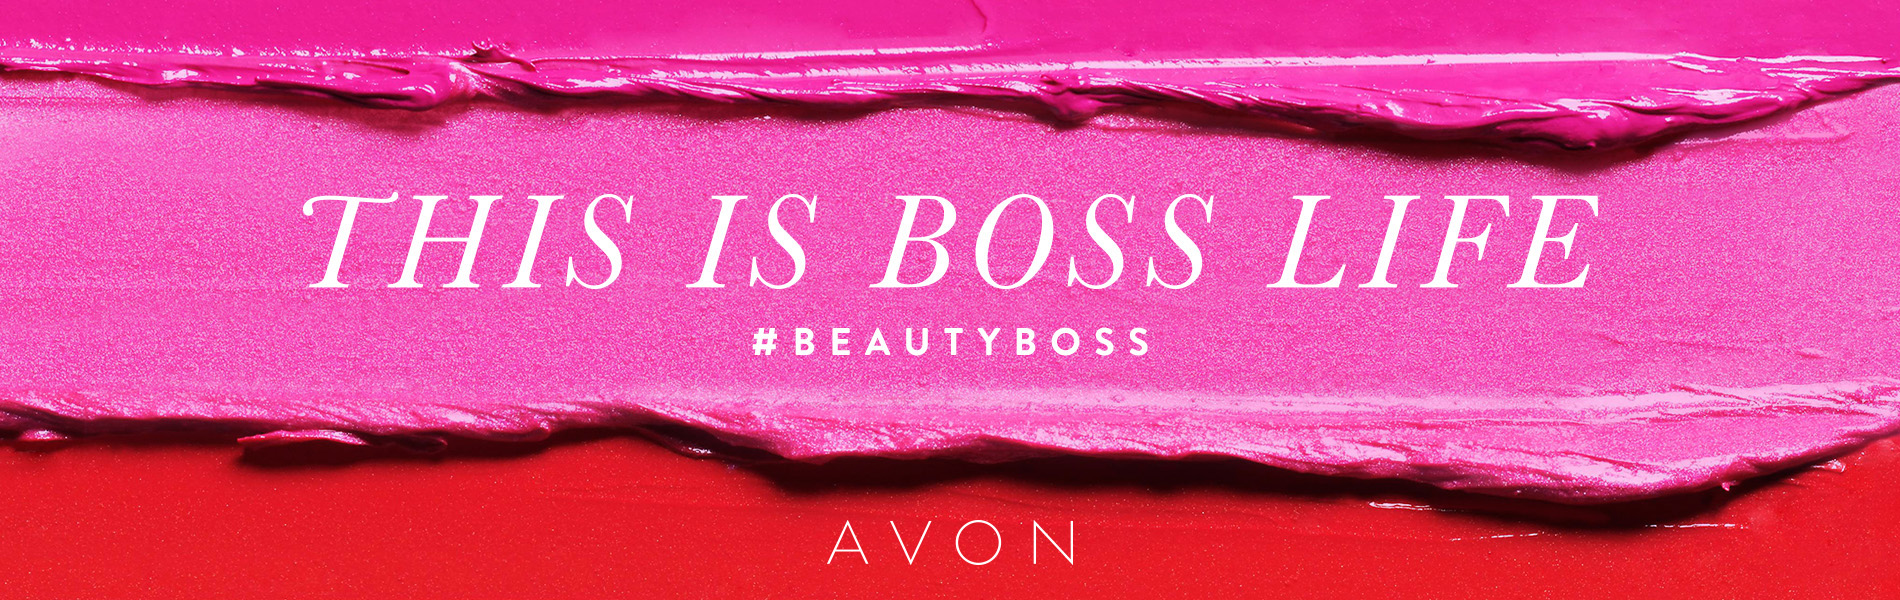 AVON SELLING TIPS  BEING A SHY REPRESENTATIVE     Journey of an Avon Mom AVON BOSS LIFE